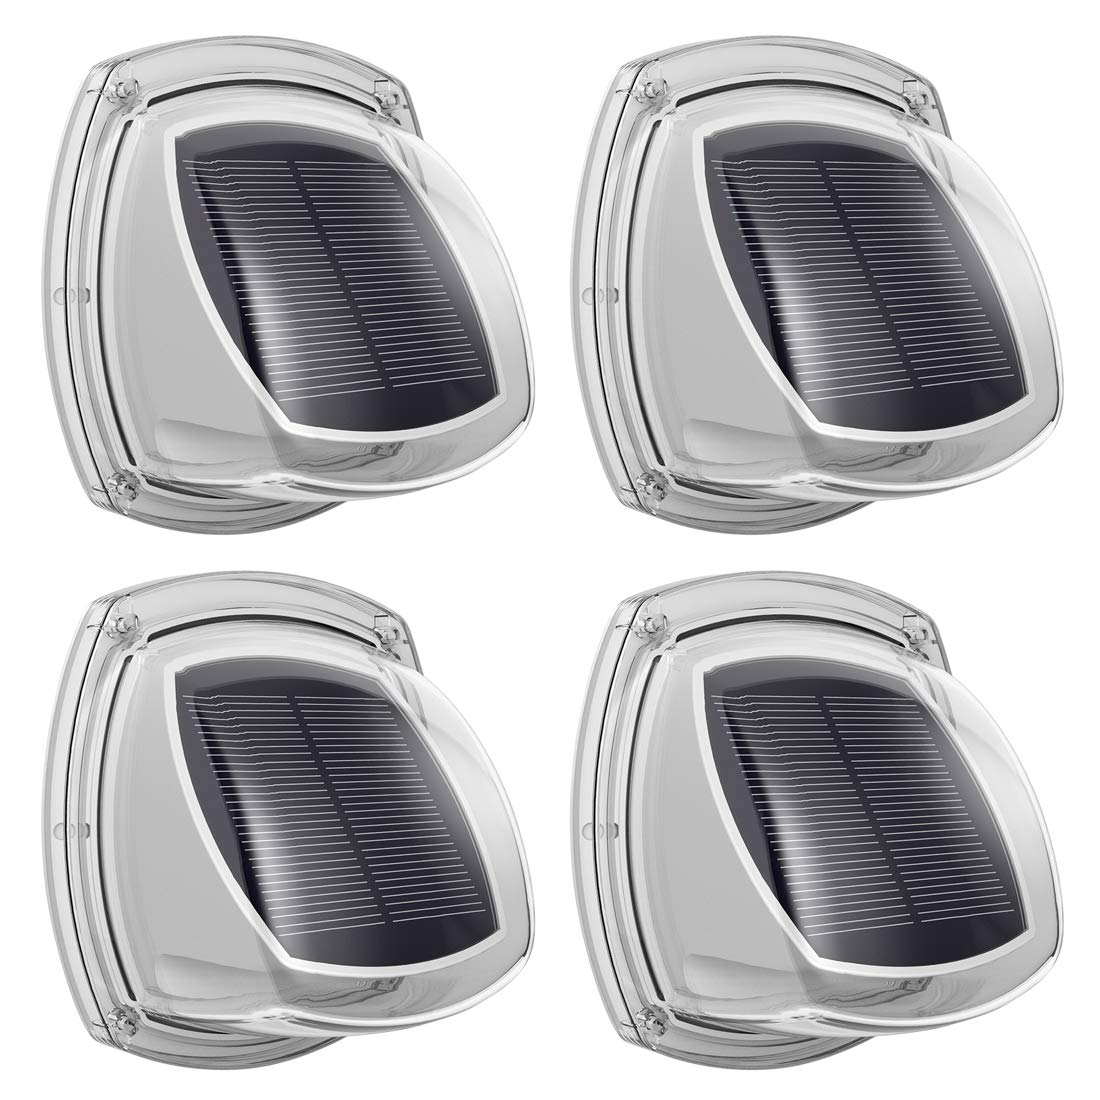 Ankway Solar Garden Lights 2 Pack, IP67 Waterproof 4 LED Decorative Lights Outdoor with Faint Halo, High Efficiency, Light Control, Auto on/off, Ideal for Fence Wall Shed Step Patio Yard Stairway Gate